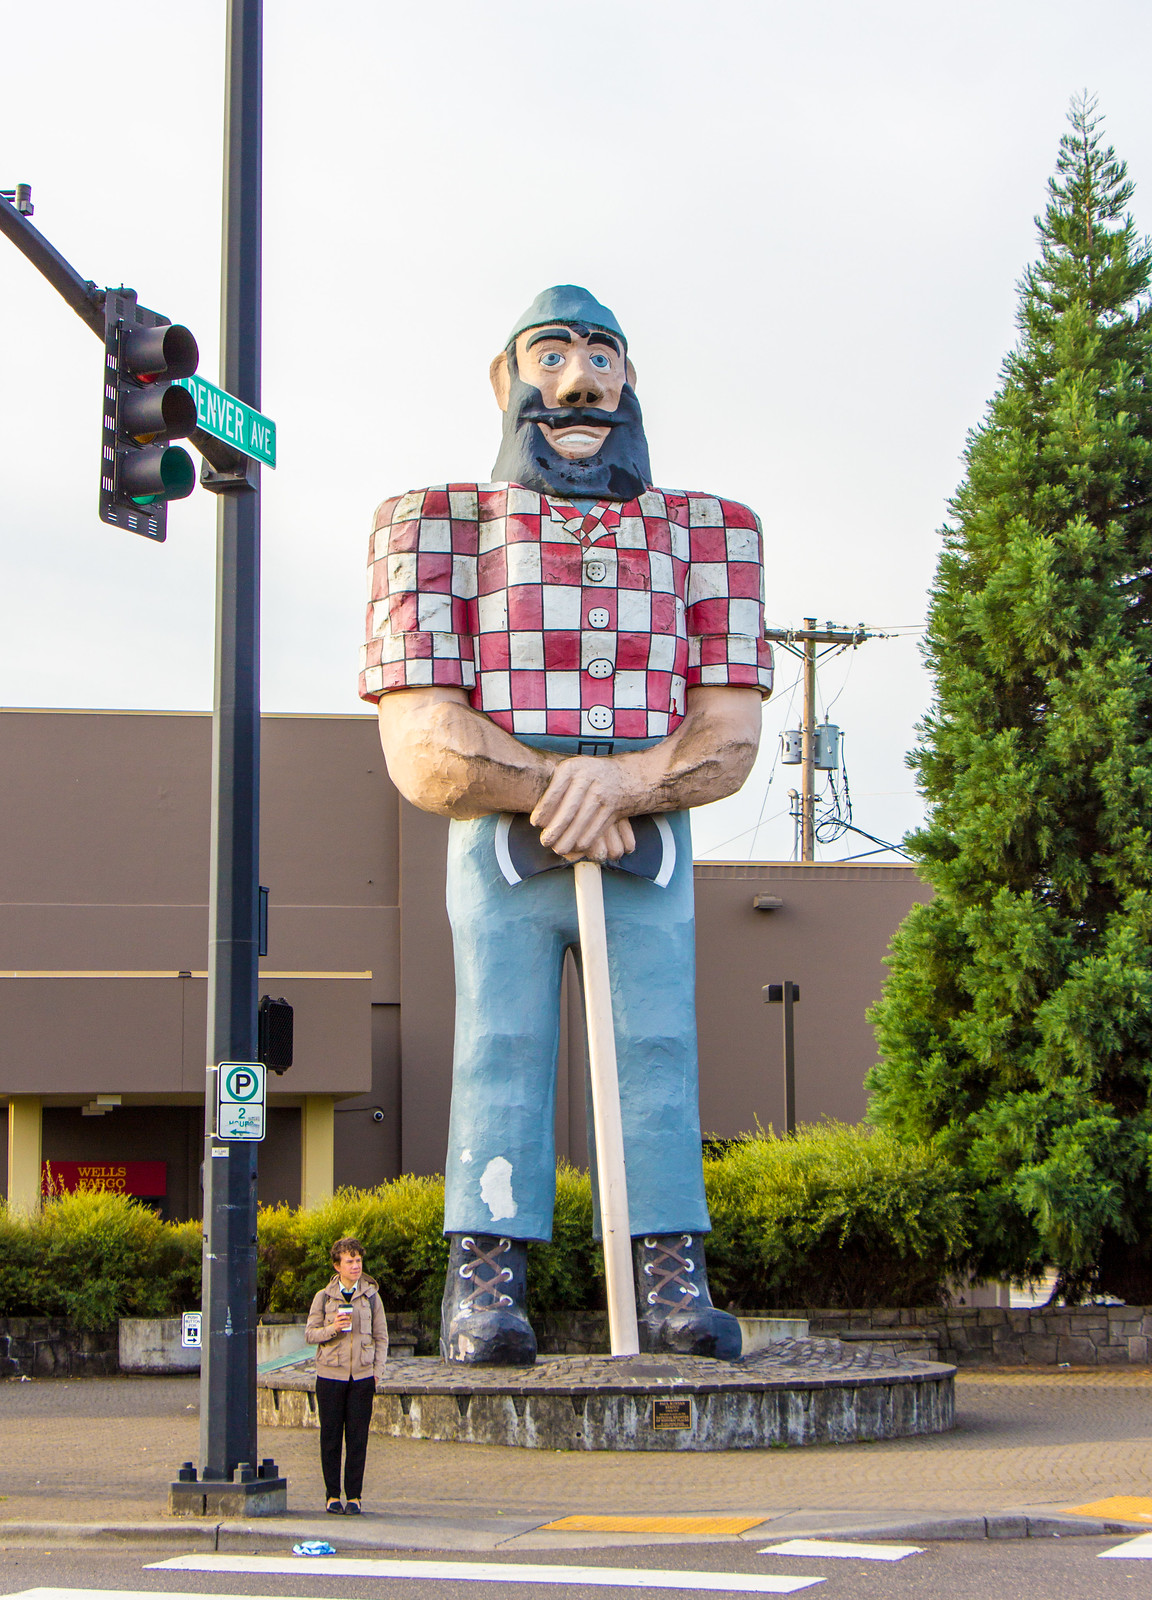 Kenton's Paul Bunyan